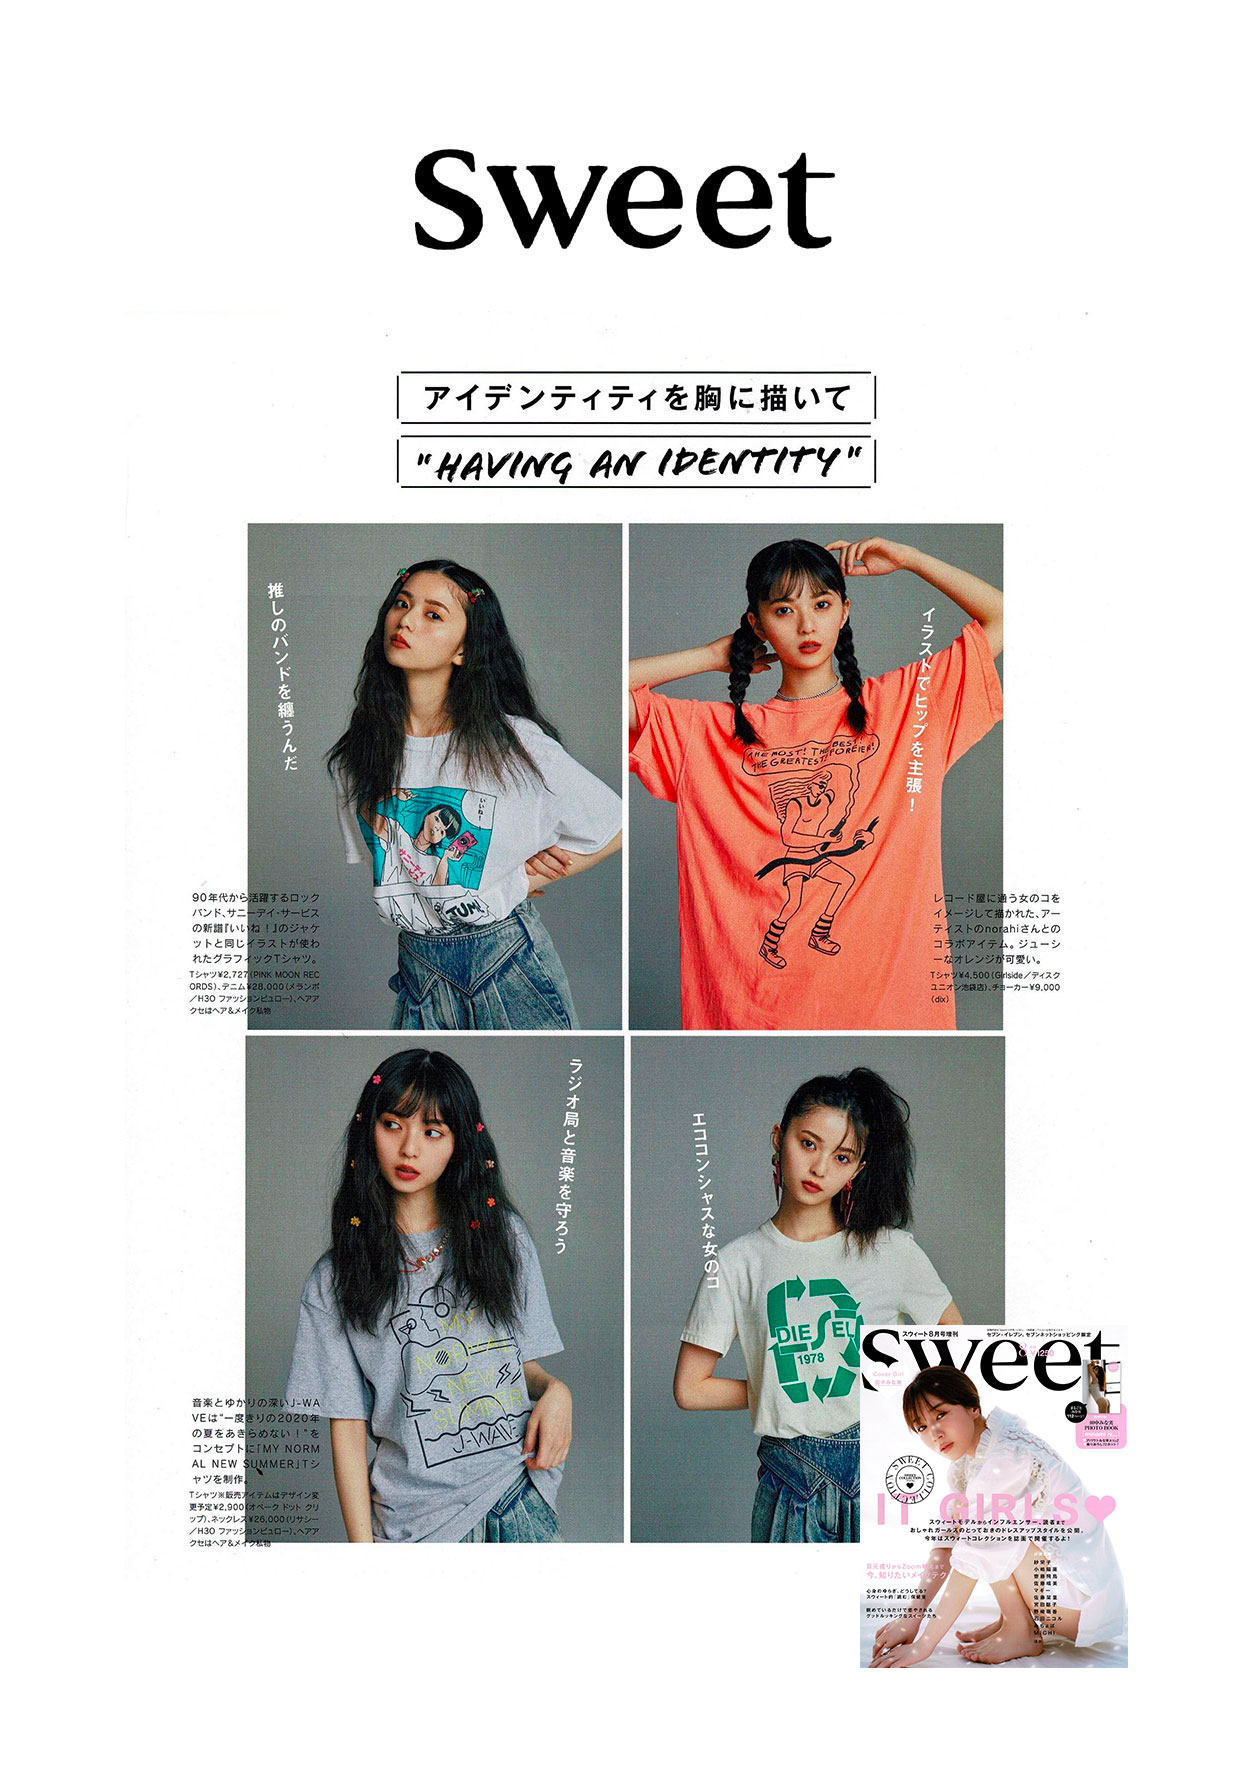 melampo-press-sweet-japan-magazine3